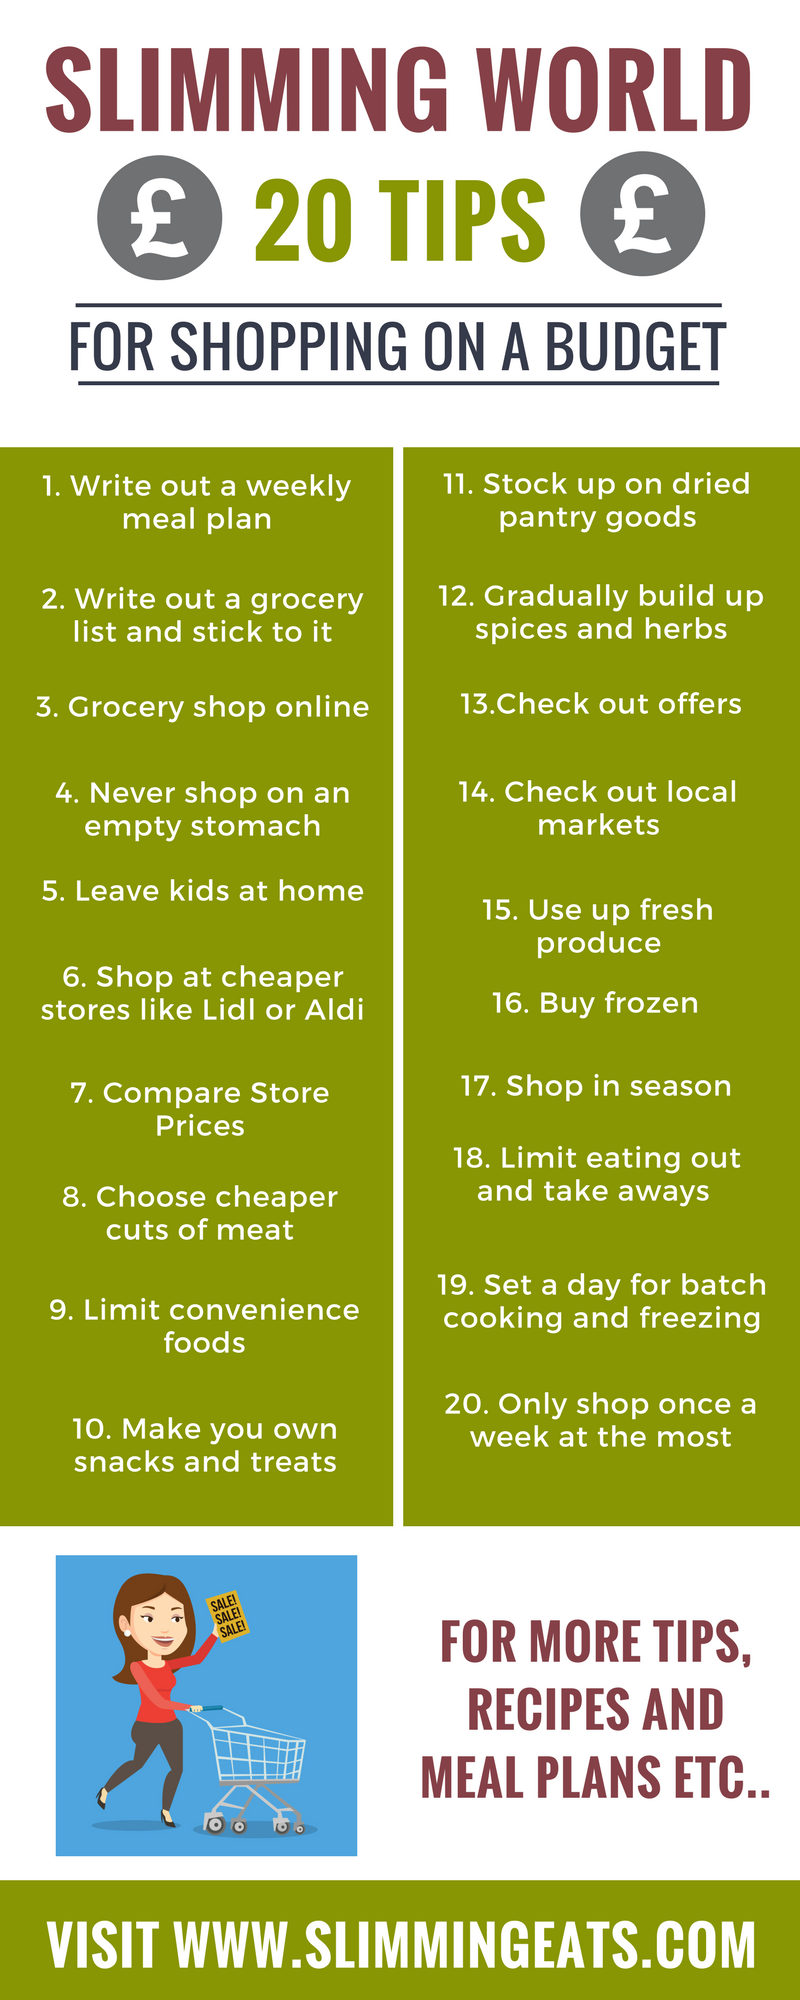 Slimming world 20 tips for shopping on a budget One you slimming world